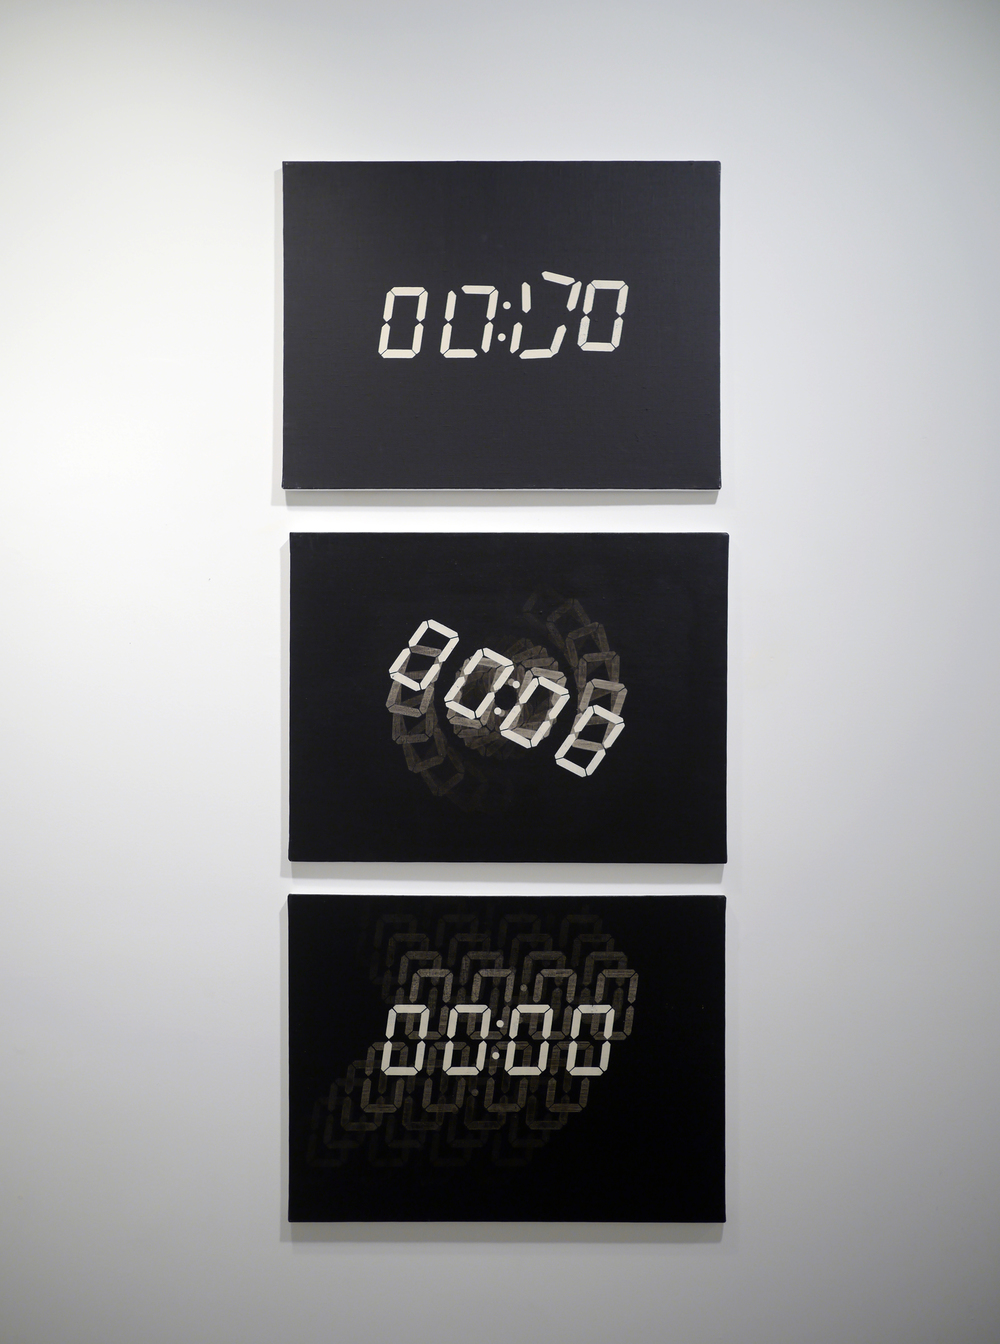 From the top:   Dissolution . Acrylic on canvas. 18 x 24 inches. 2013.   Less than a Second . Acrylic on canvas. 18 x 24 inches. 2013.   Folded Time . Acrylic on canvas. 18 x 24 inches. 2013.